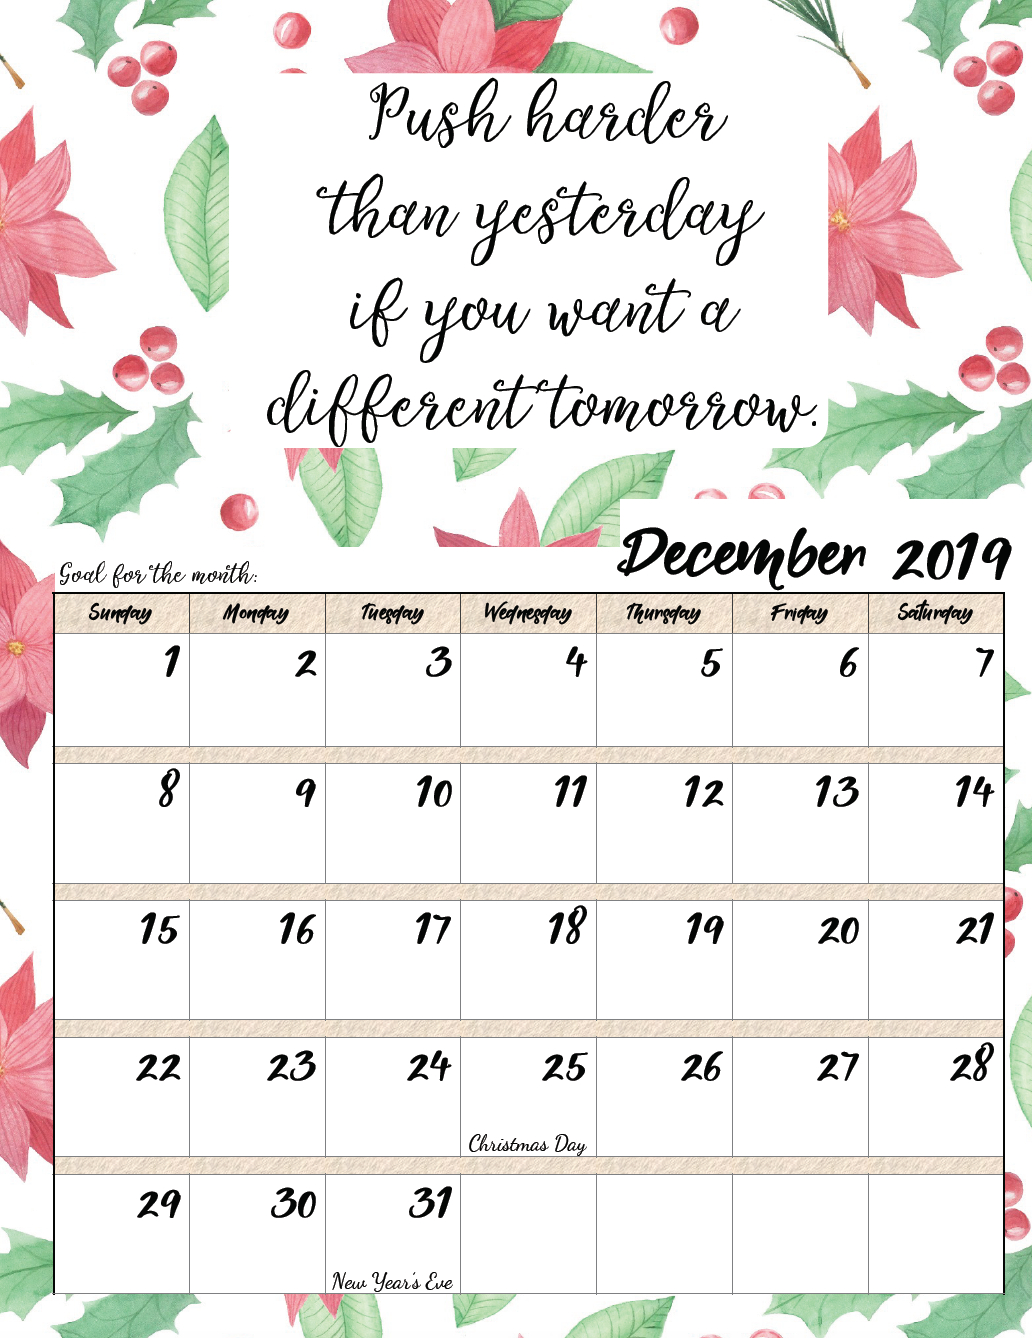 Free Printable 2019 Monthly Motivational Calendars | Morning Prayers intended for Blank Calendar Months For Year 2019-2020 Girly